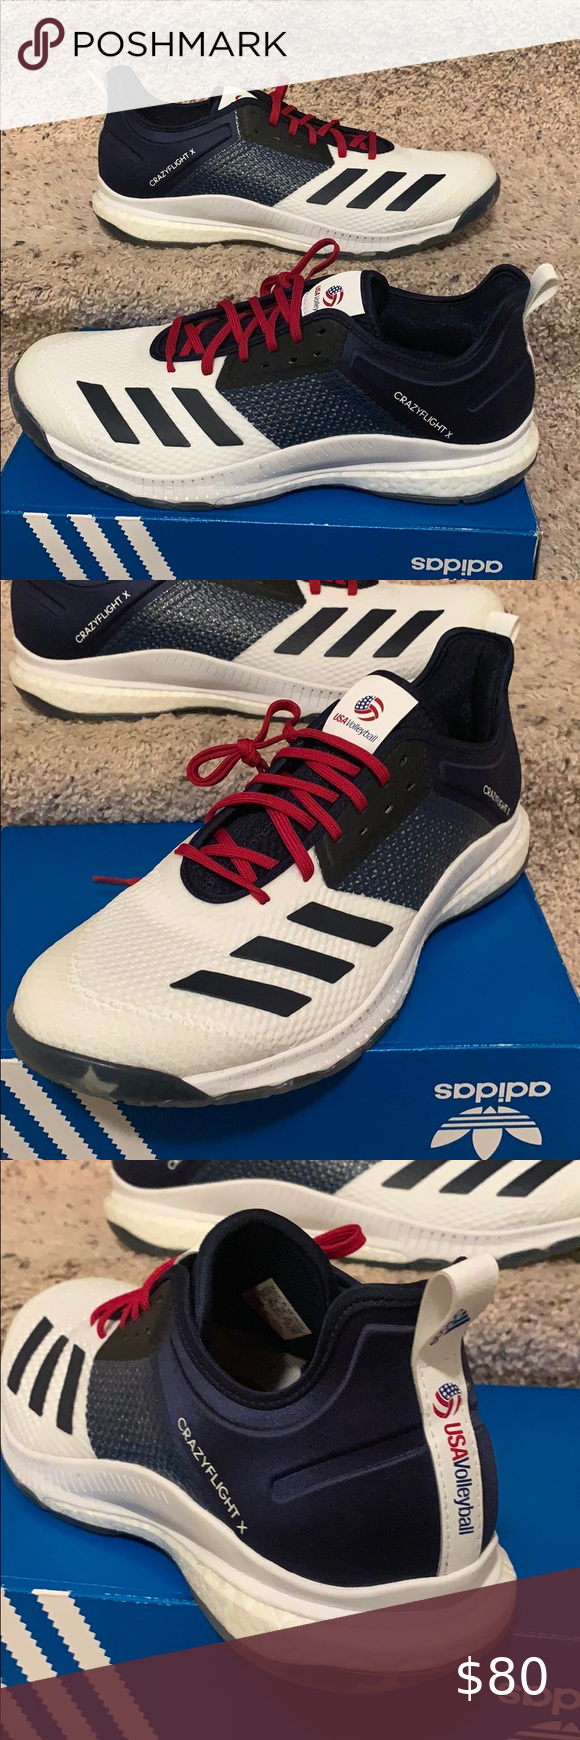 Adidas Crazyflight X3 Volleyball Shoes Women 12 In 2020 Volleyball Shoes Women Shoes Women Volleyball